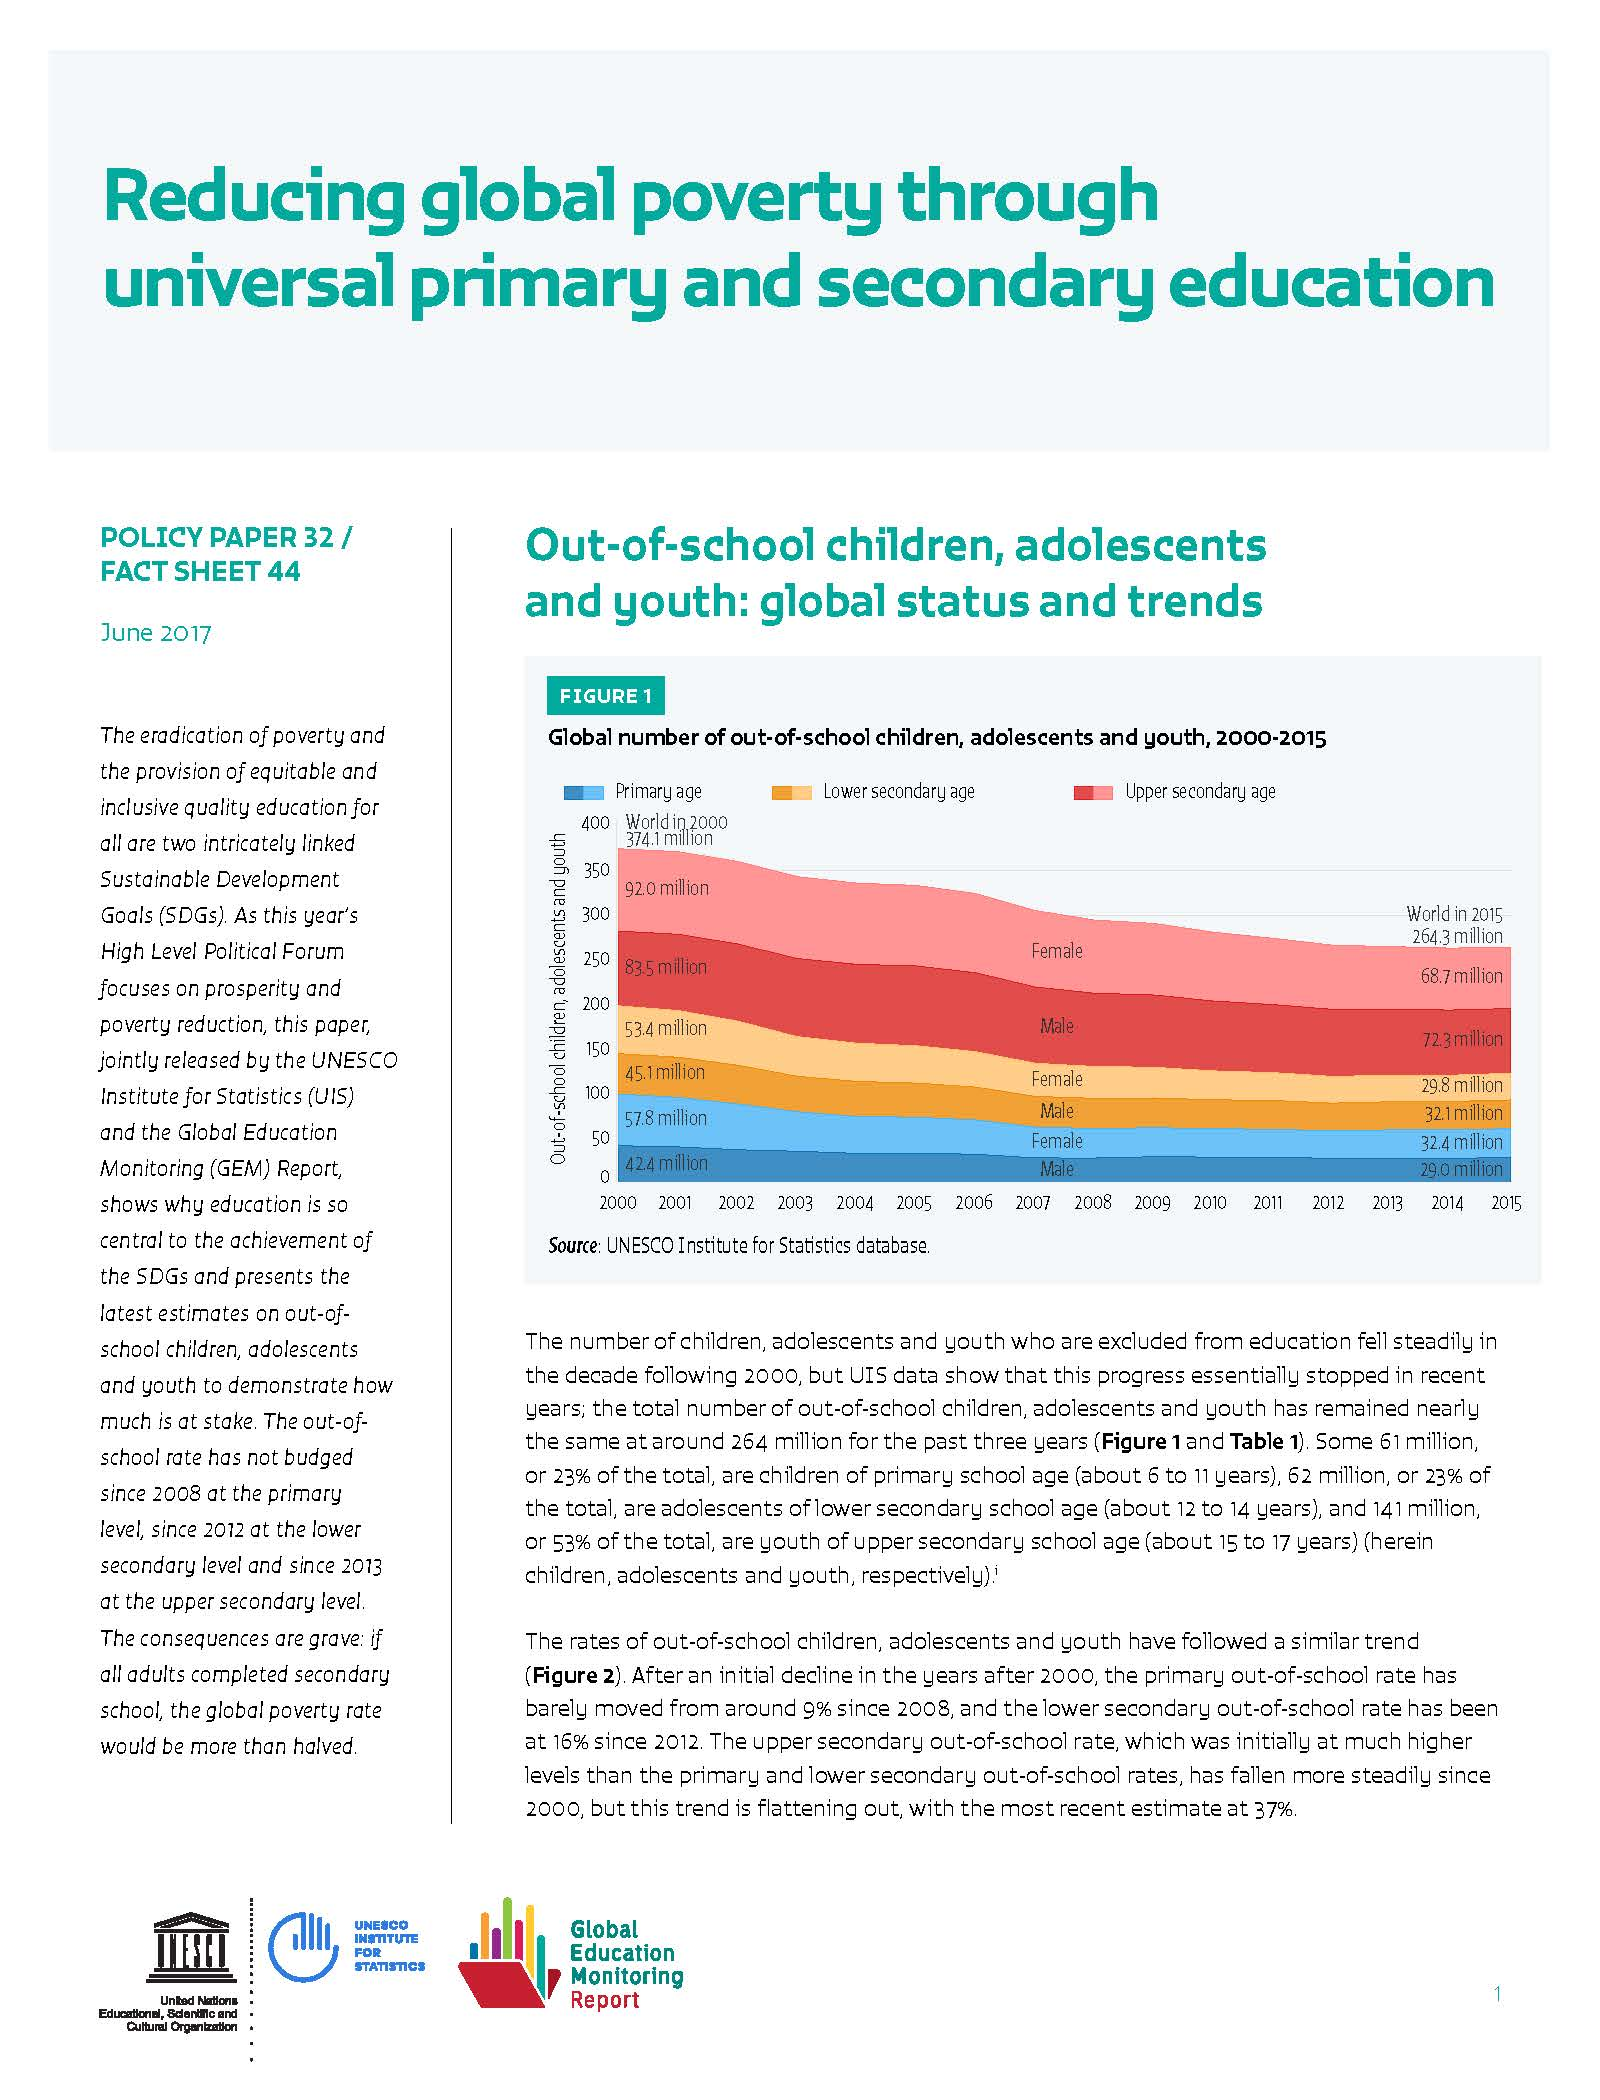 Reducing global poverty through universal primary and secondary education